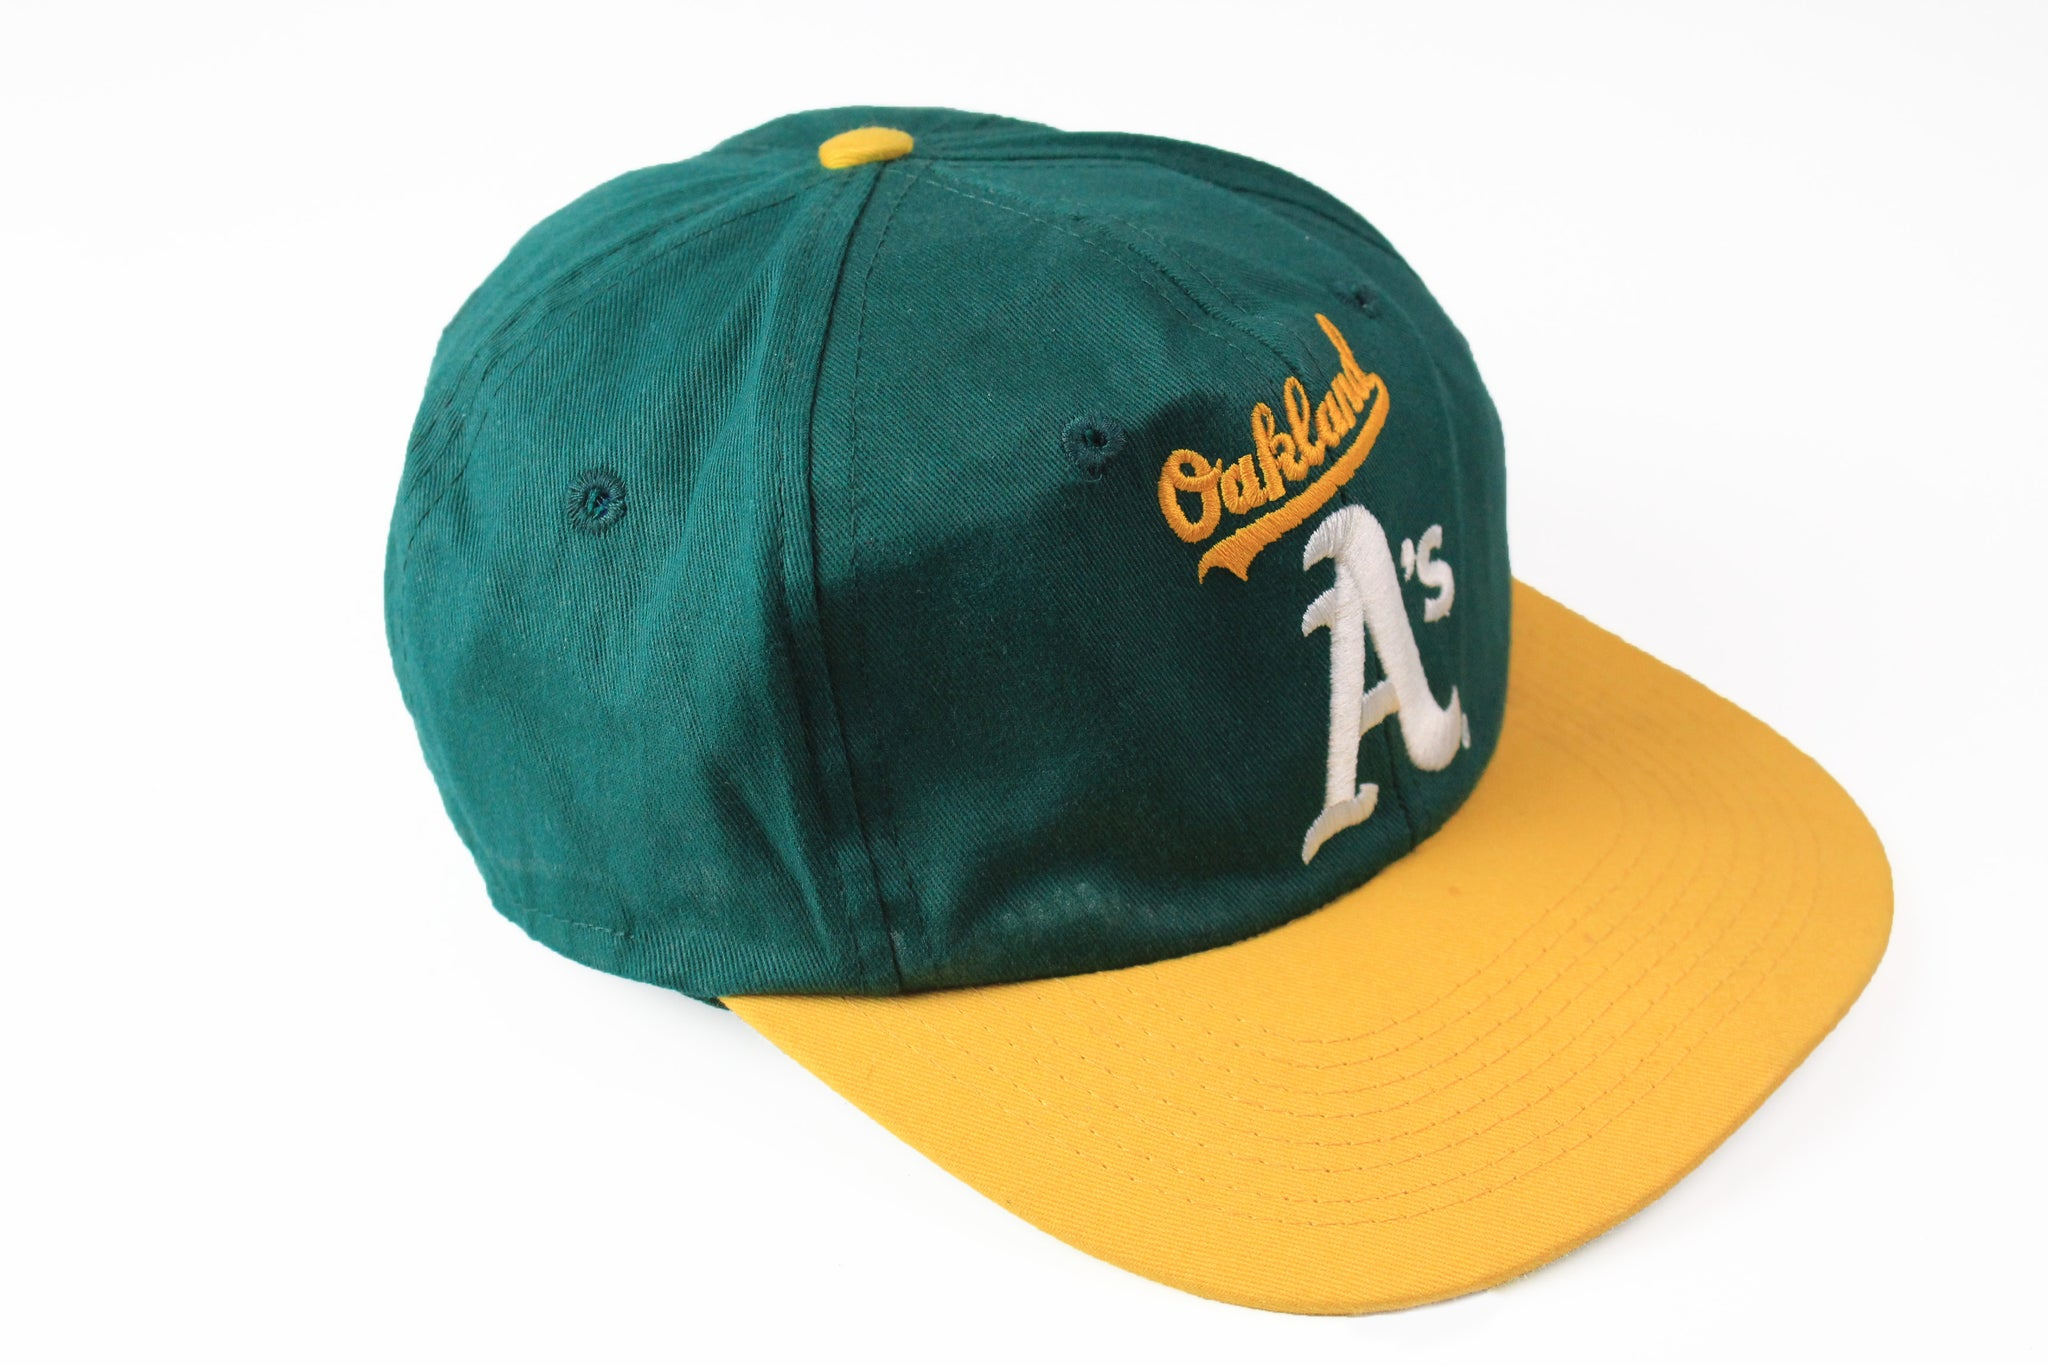 Vintage Oakland Athletics Cap green yellow 90s big logo hat